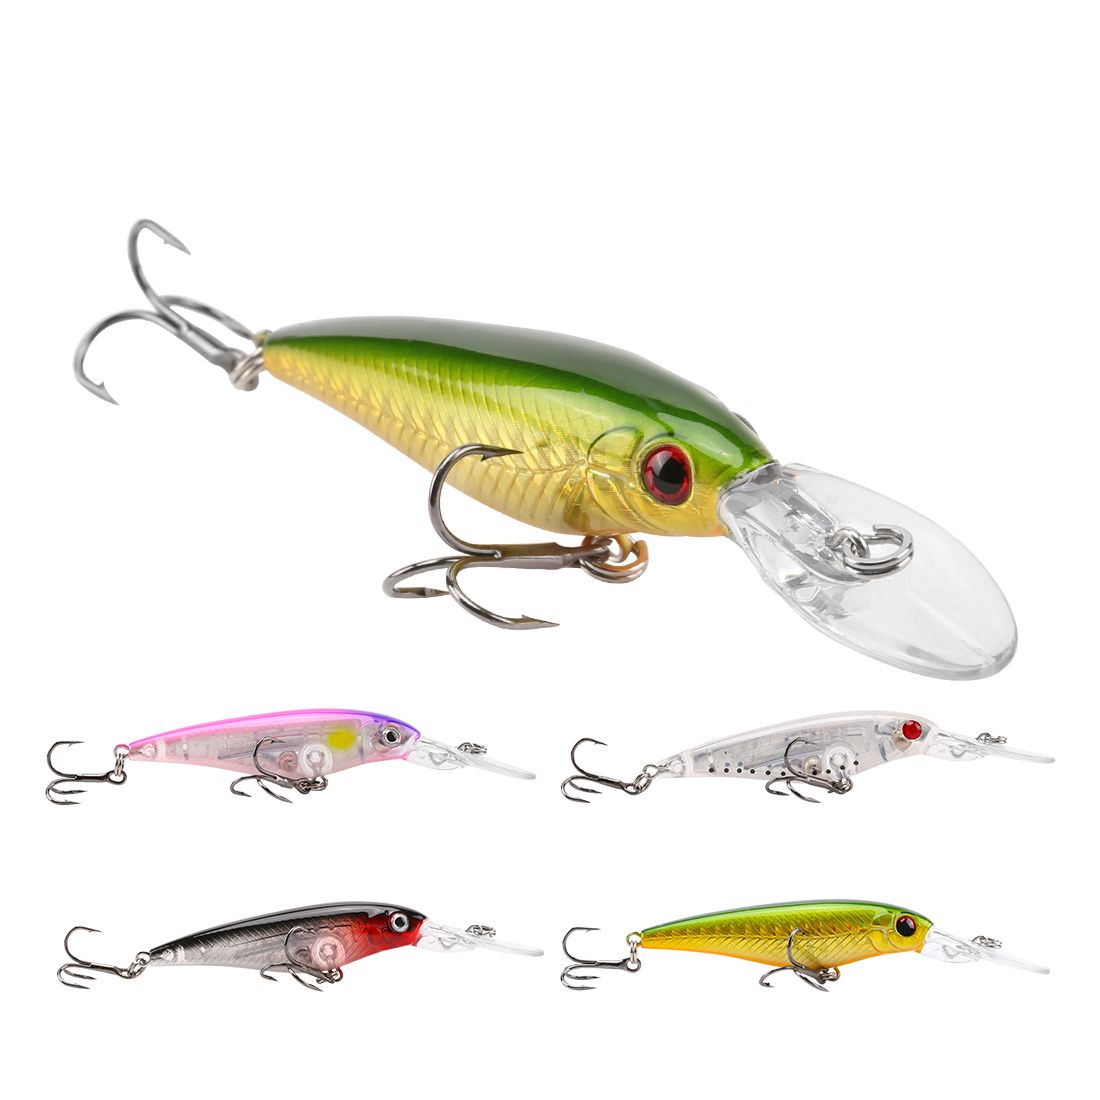 SeaKnight Minnow Fishing Lures Floating Sea Fishing Lures For Bass,Pike